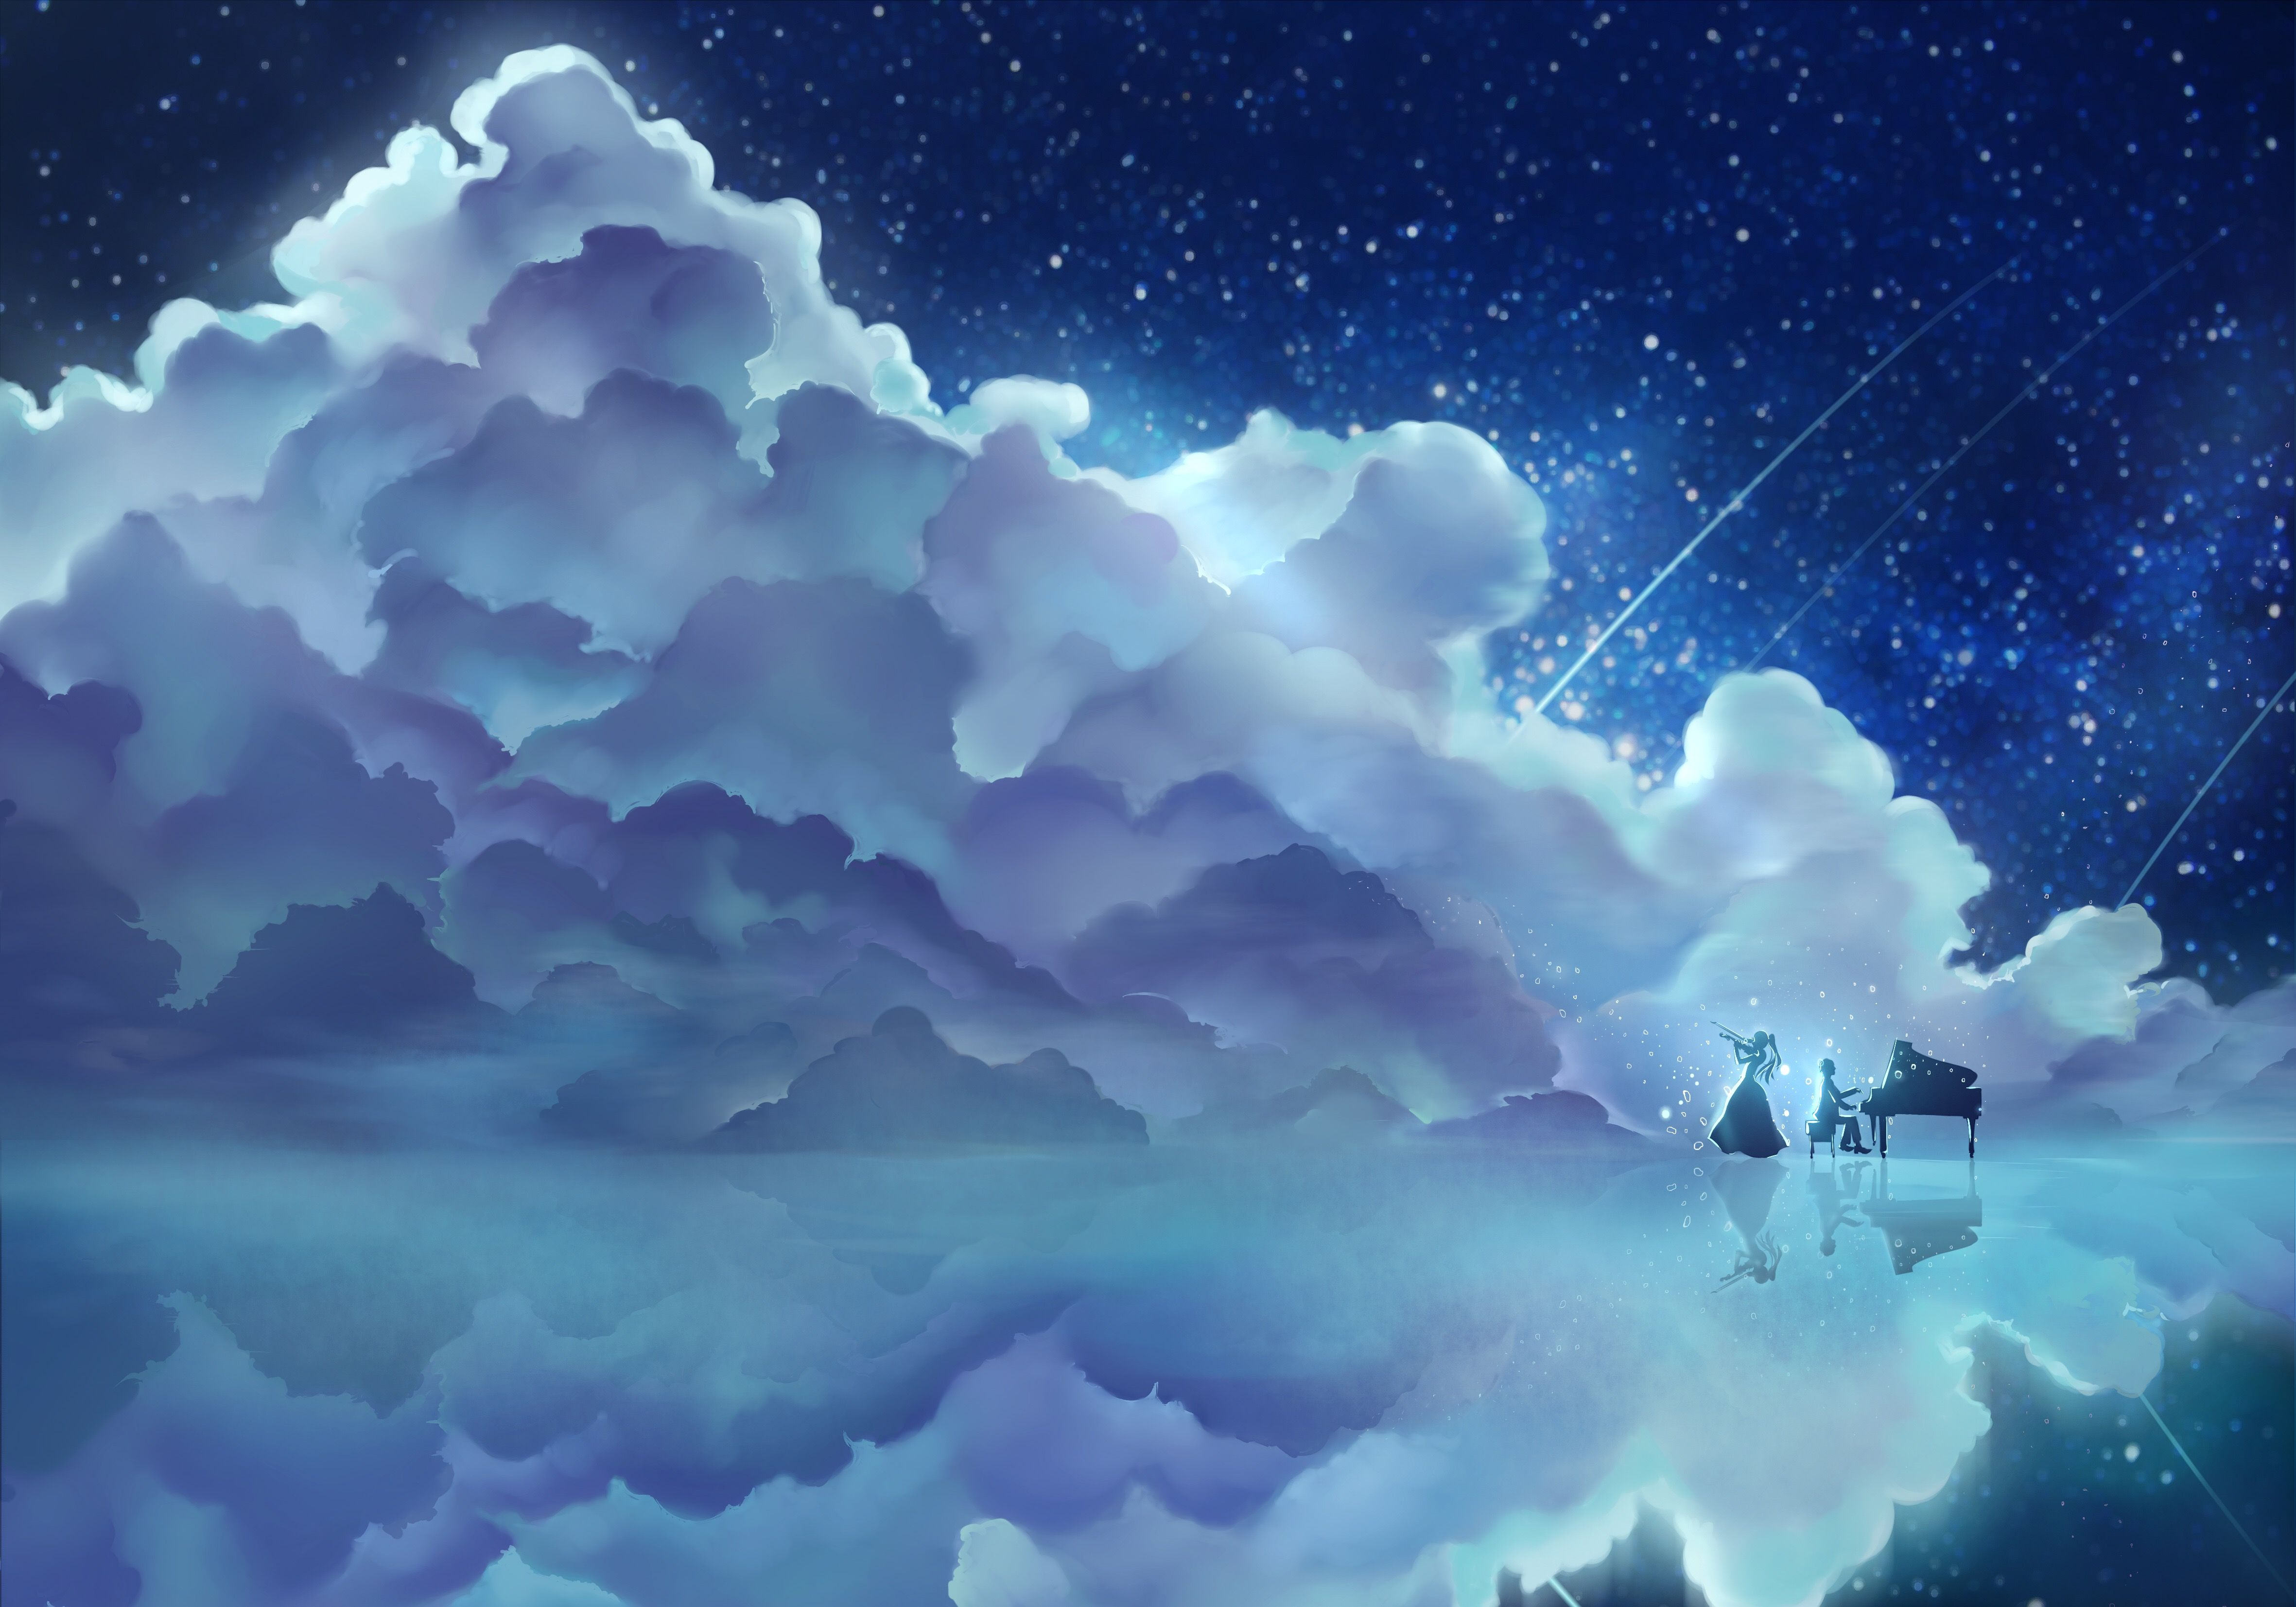 Your Lie In April Your Lie In April Background Images Scenery